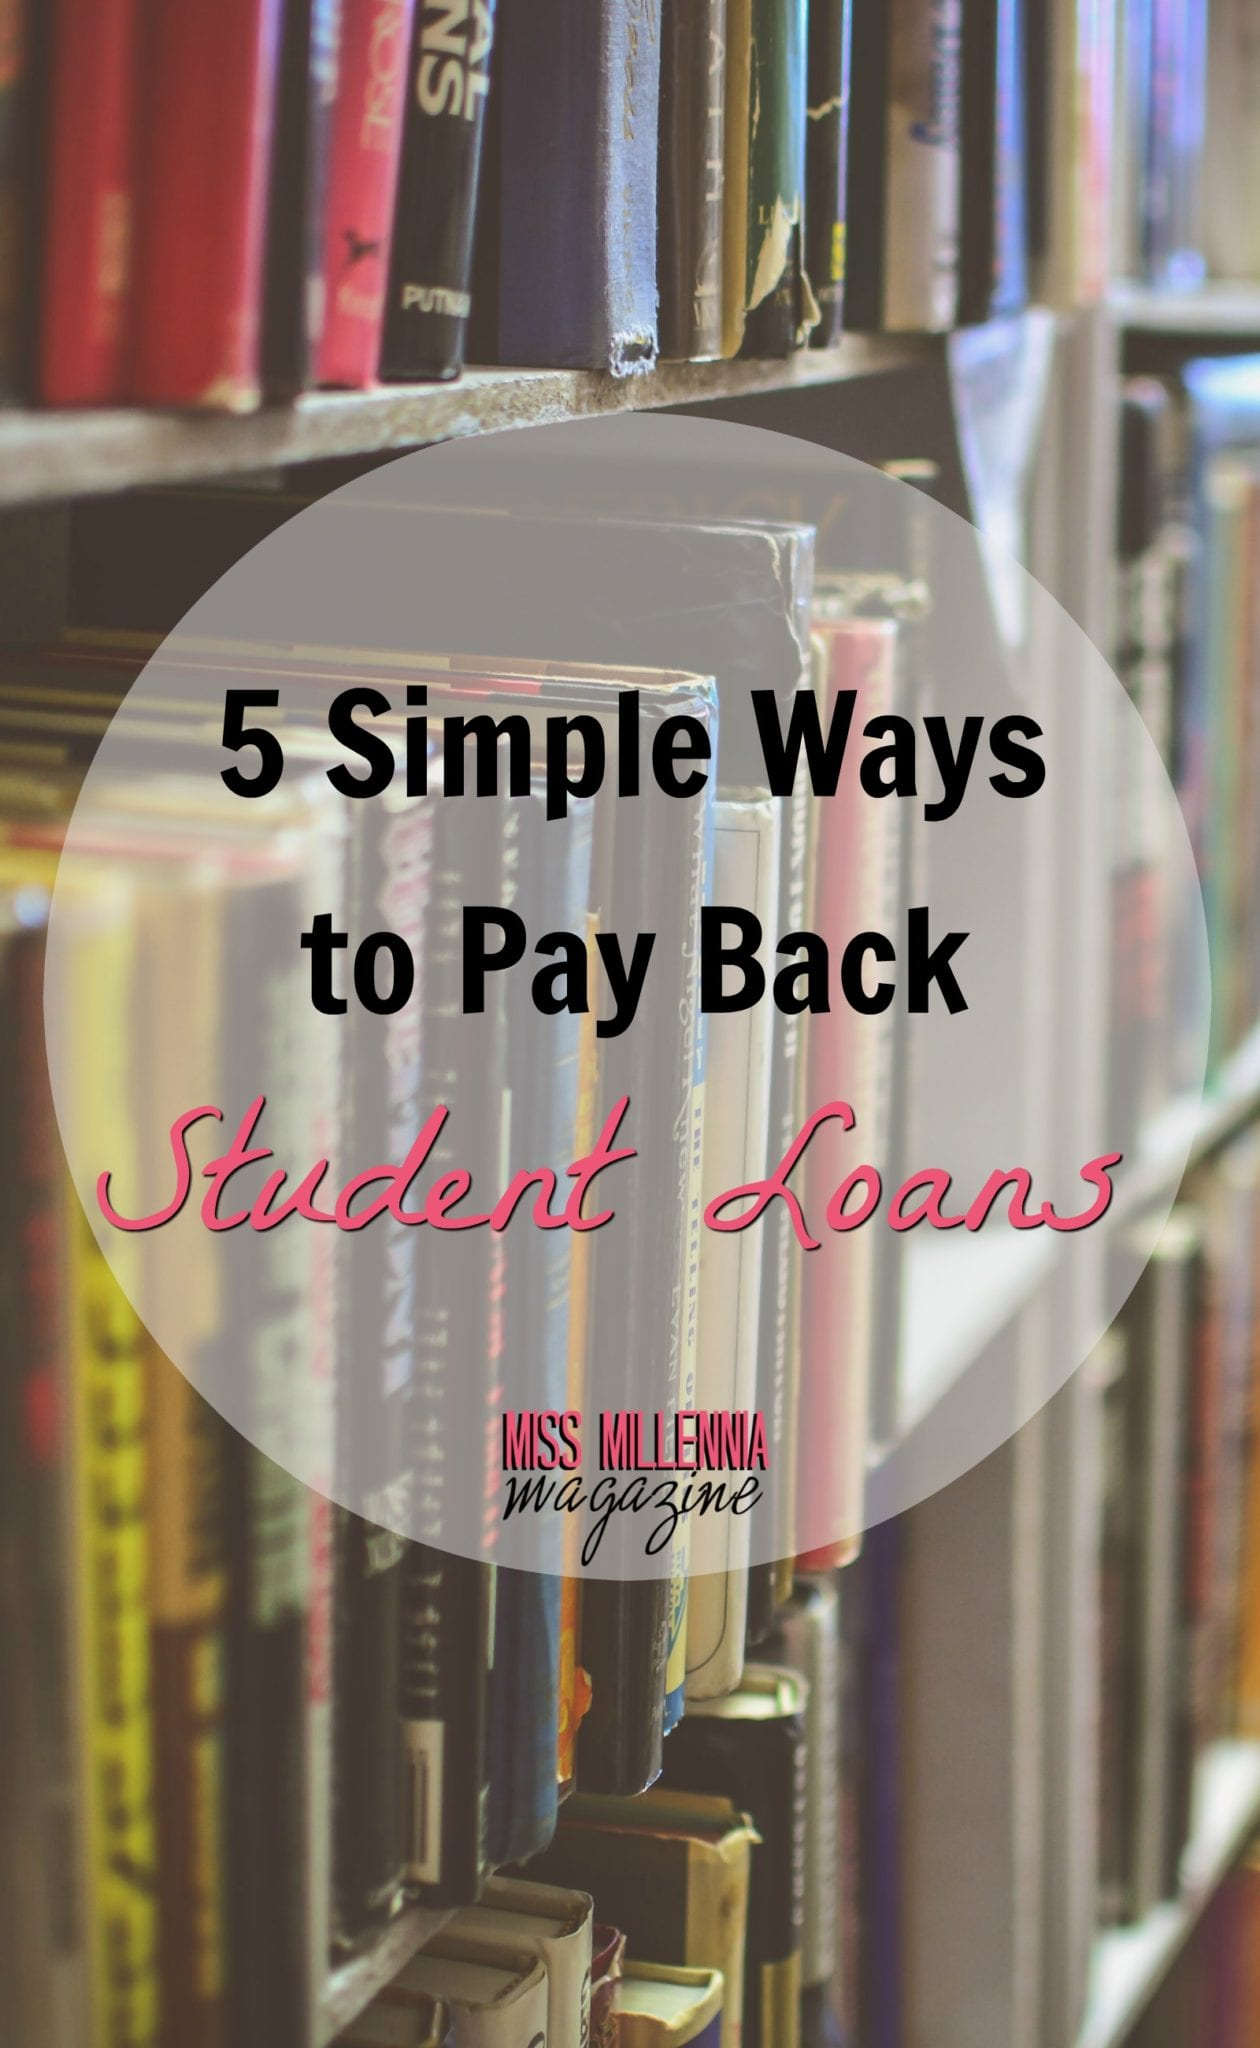 5 Simple Ways to Pay Back Student Loans